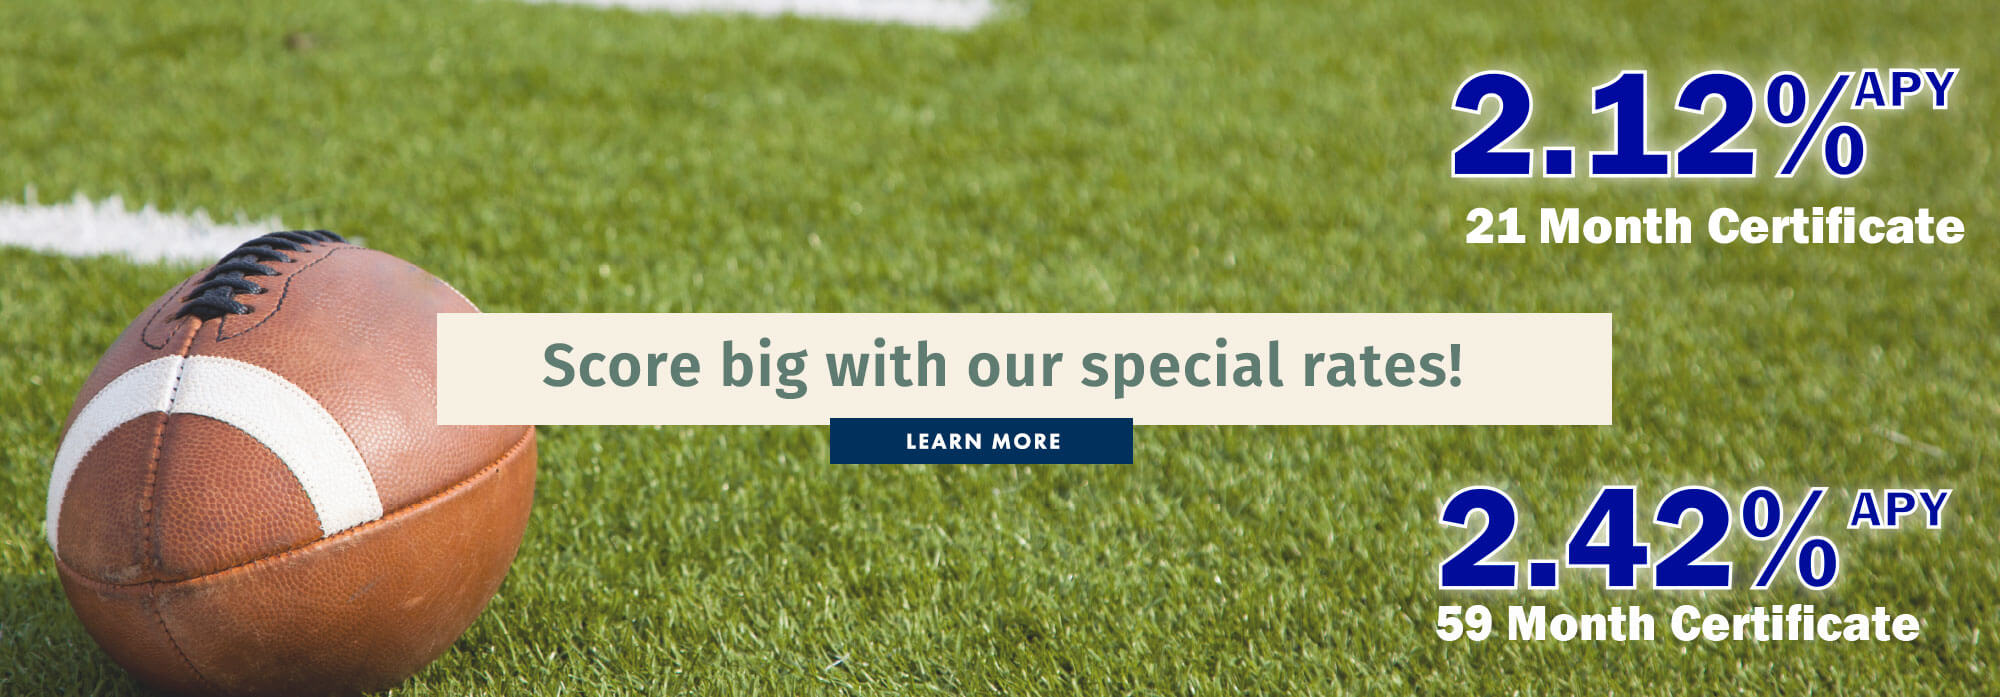 Score big with our special rates!